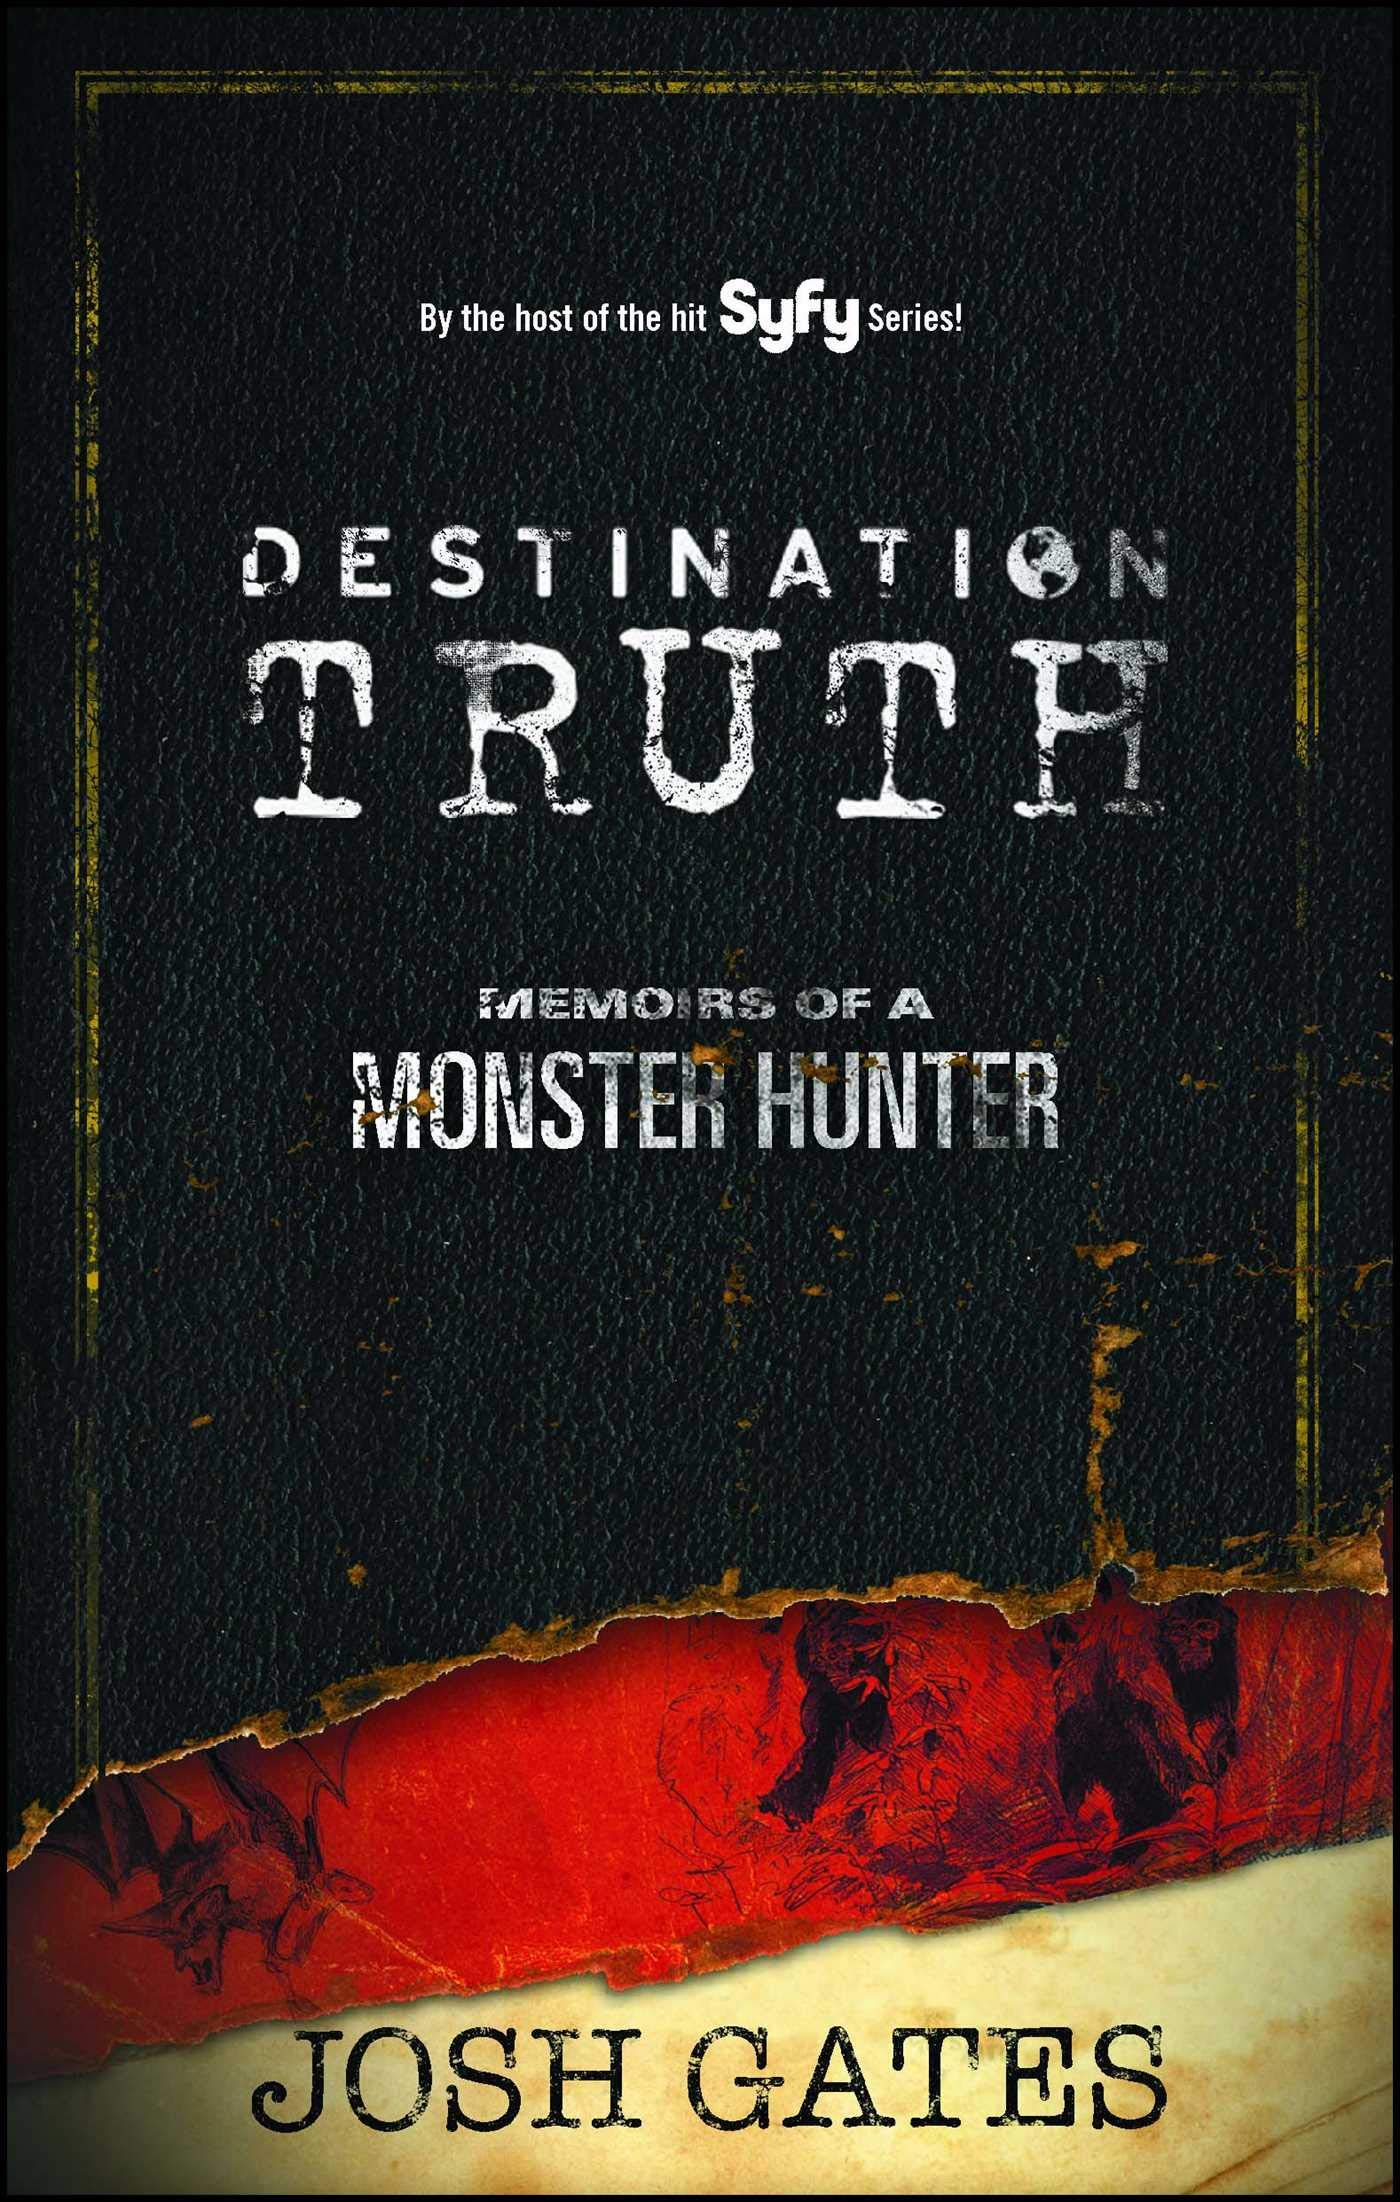 Cover of the book Destination Truth: Memoirs of a Monster Hunter by Josh Gates